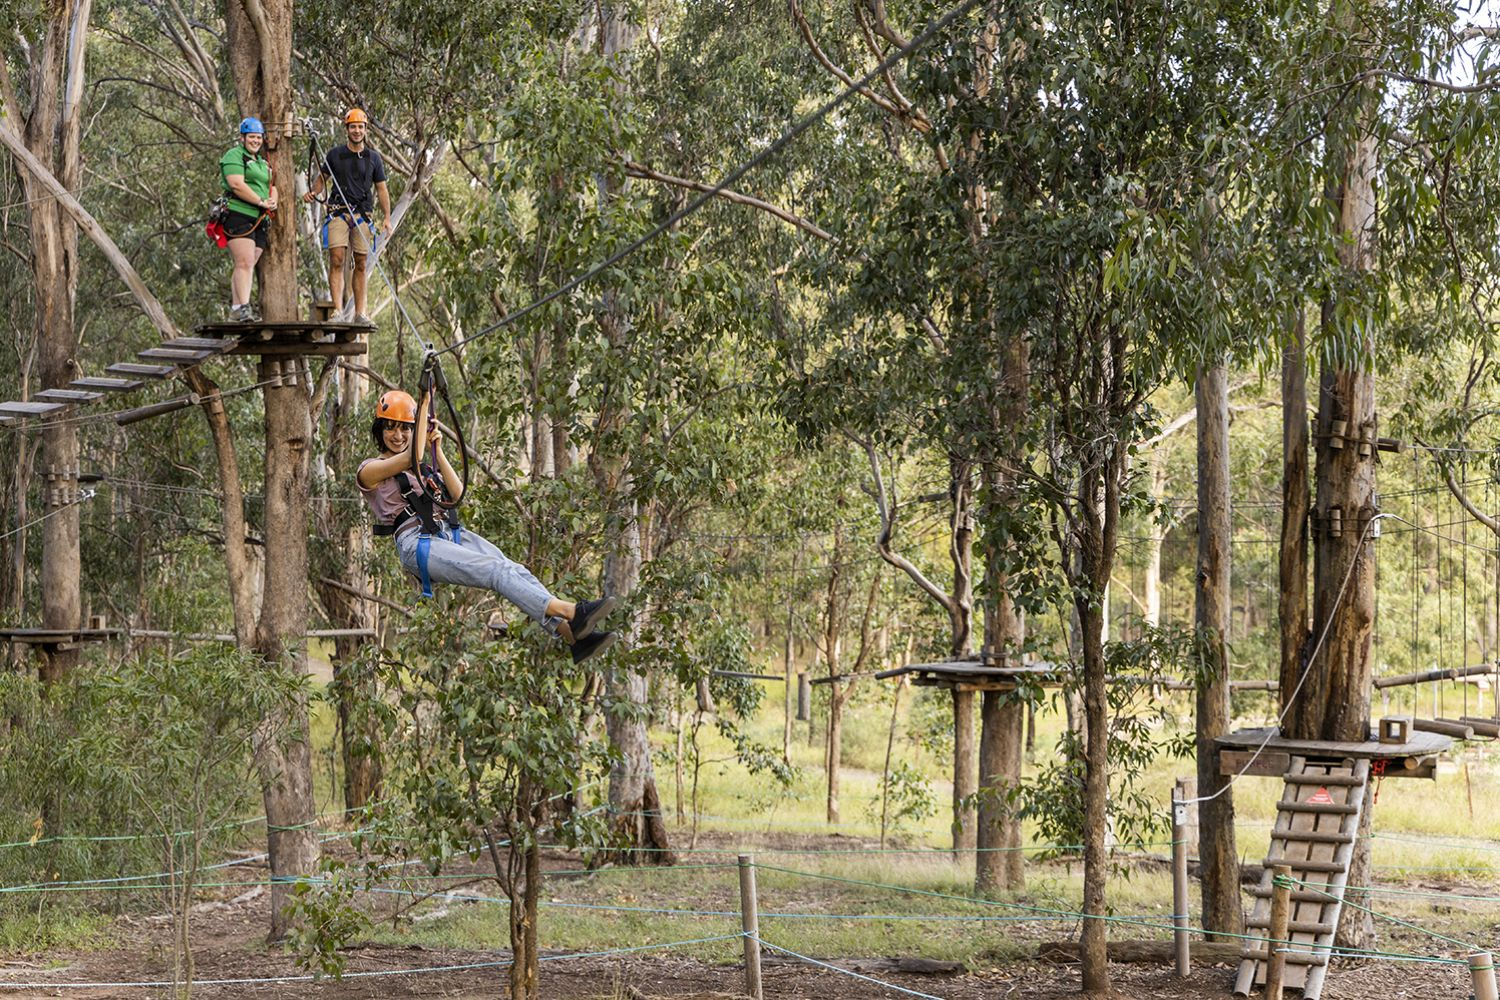 Woman enjoying the action at TreeTops Adventure Park, Abbotsbury in Sydney's south west